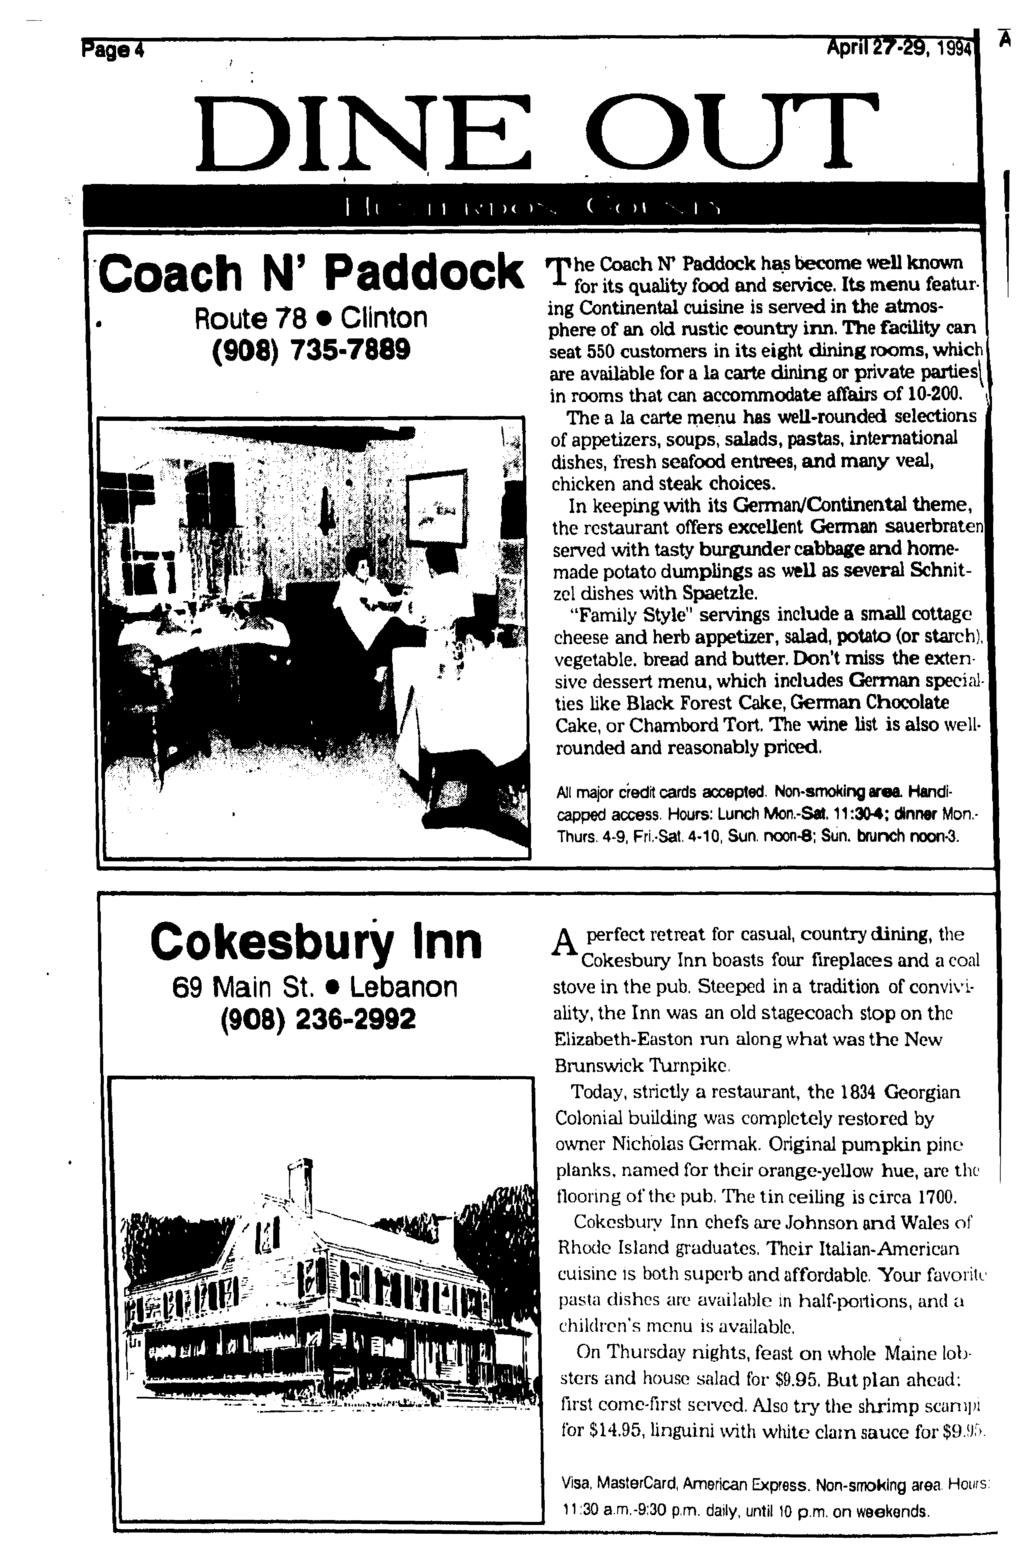 DINE OUT ( ( > Coach N' Paddock Route 78 Clinton (908) 735-7889 Coach N* Paddock has become well known for its quality food and service.